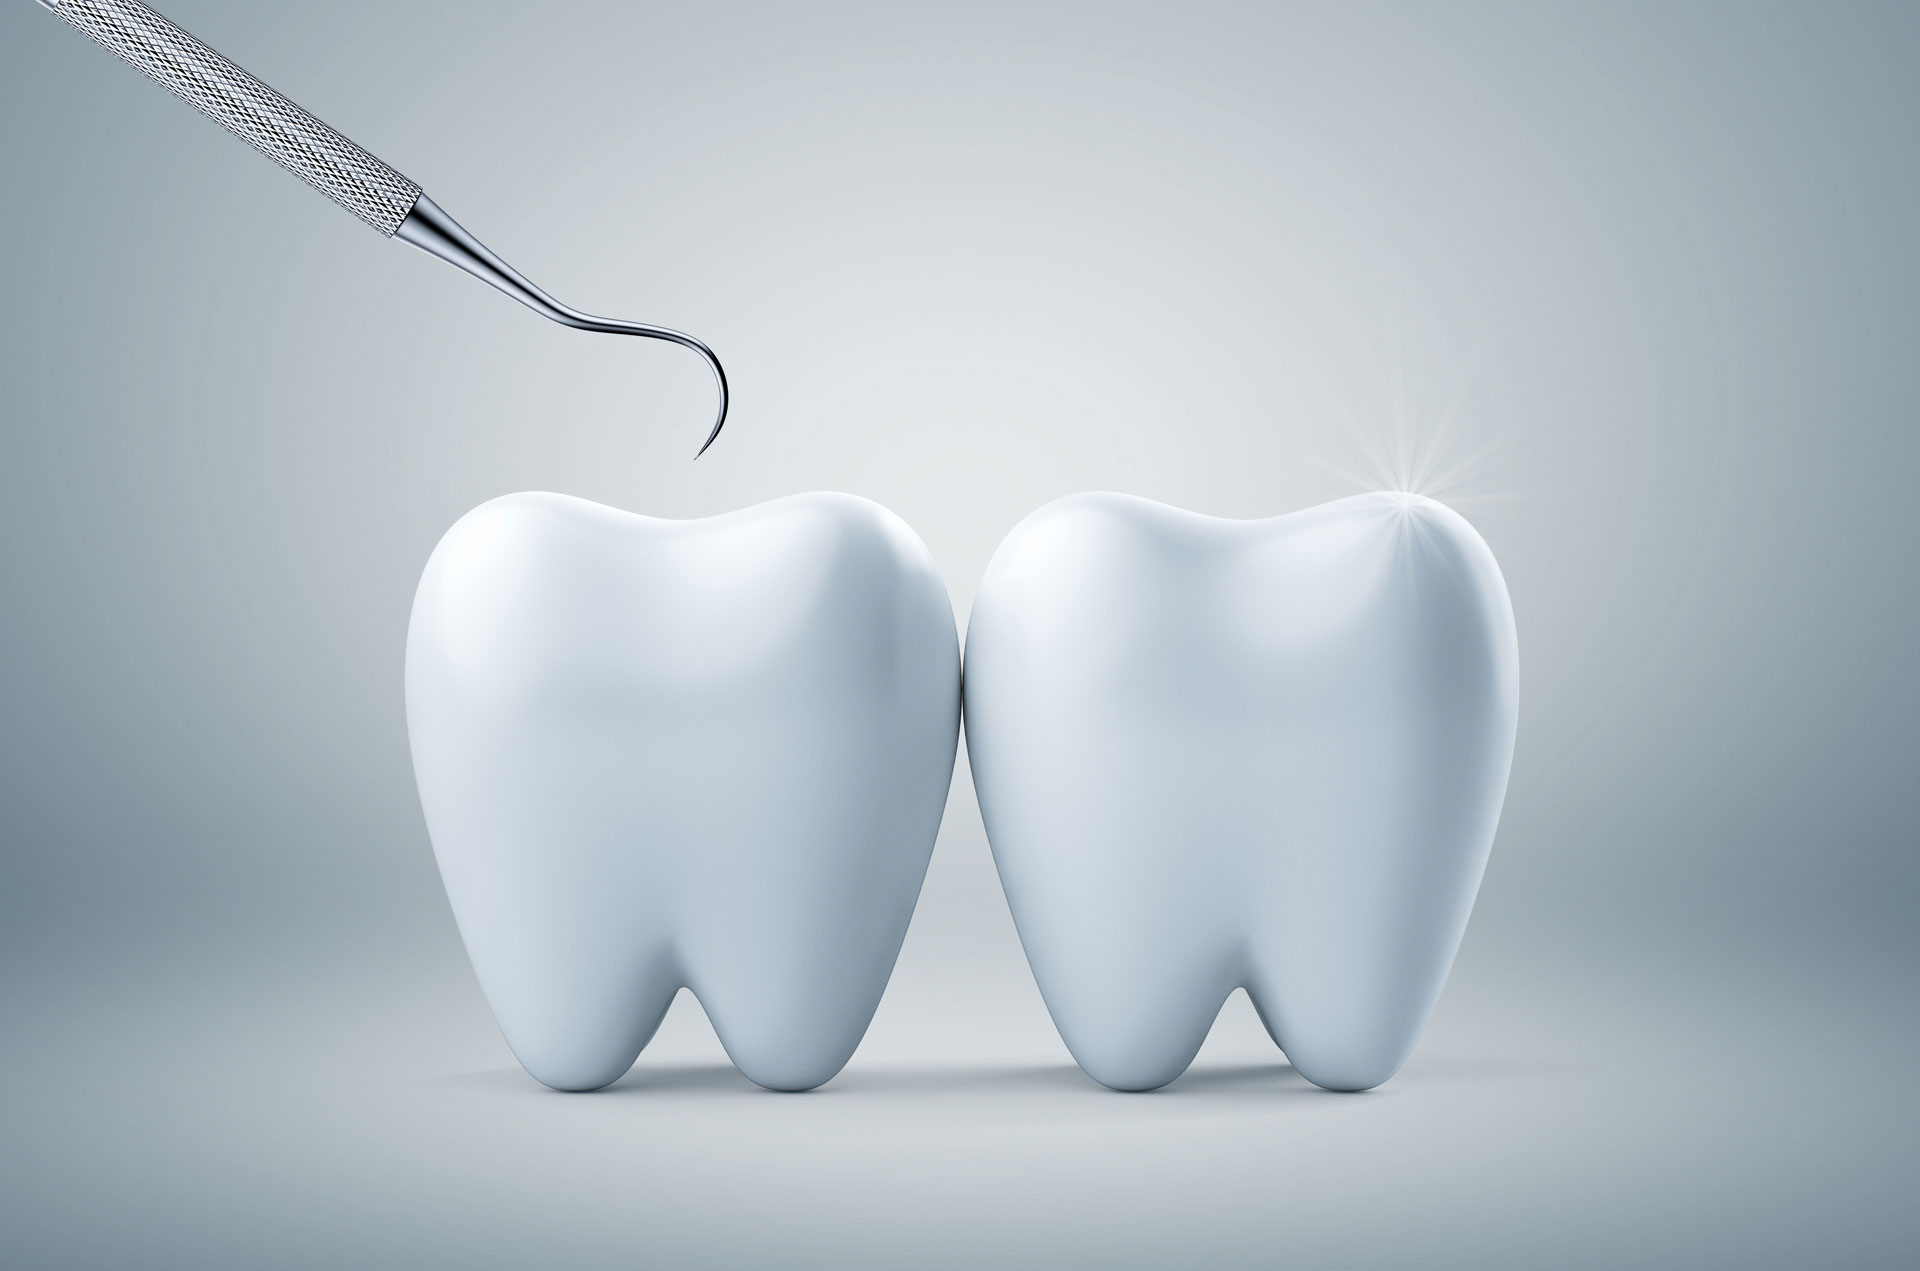 DENTAL DECAY: CAUSES AND TREATMENTS